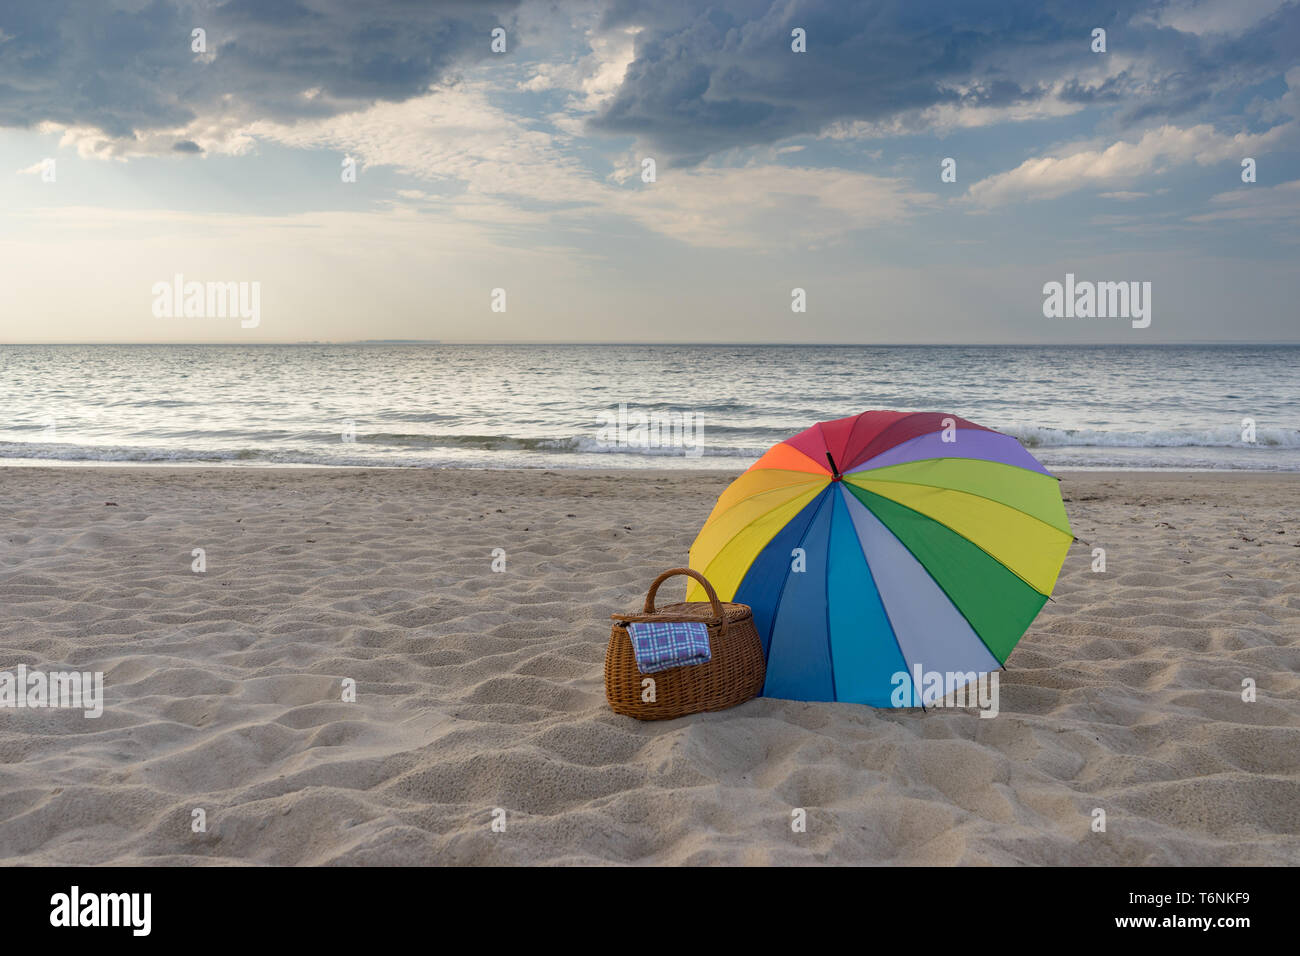 Multicolored umbrella and picnic basket against scenic beach and sea, weekend break concept - Stock Image